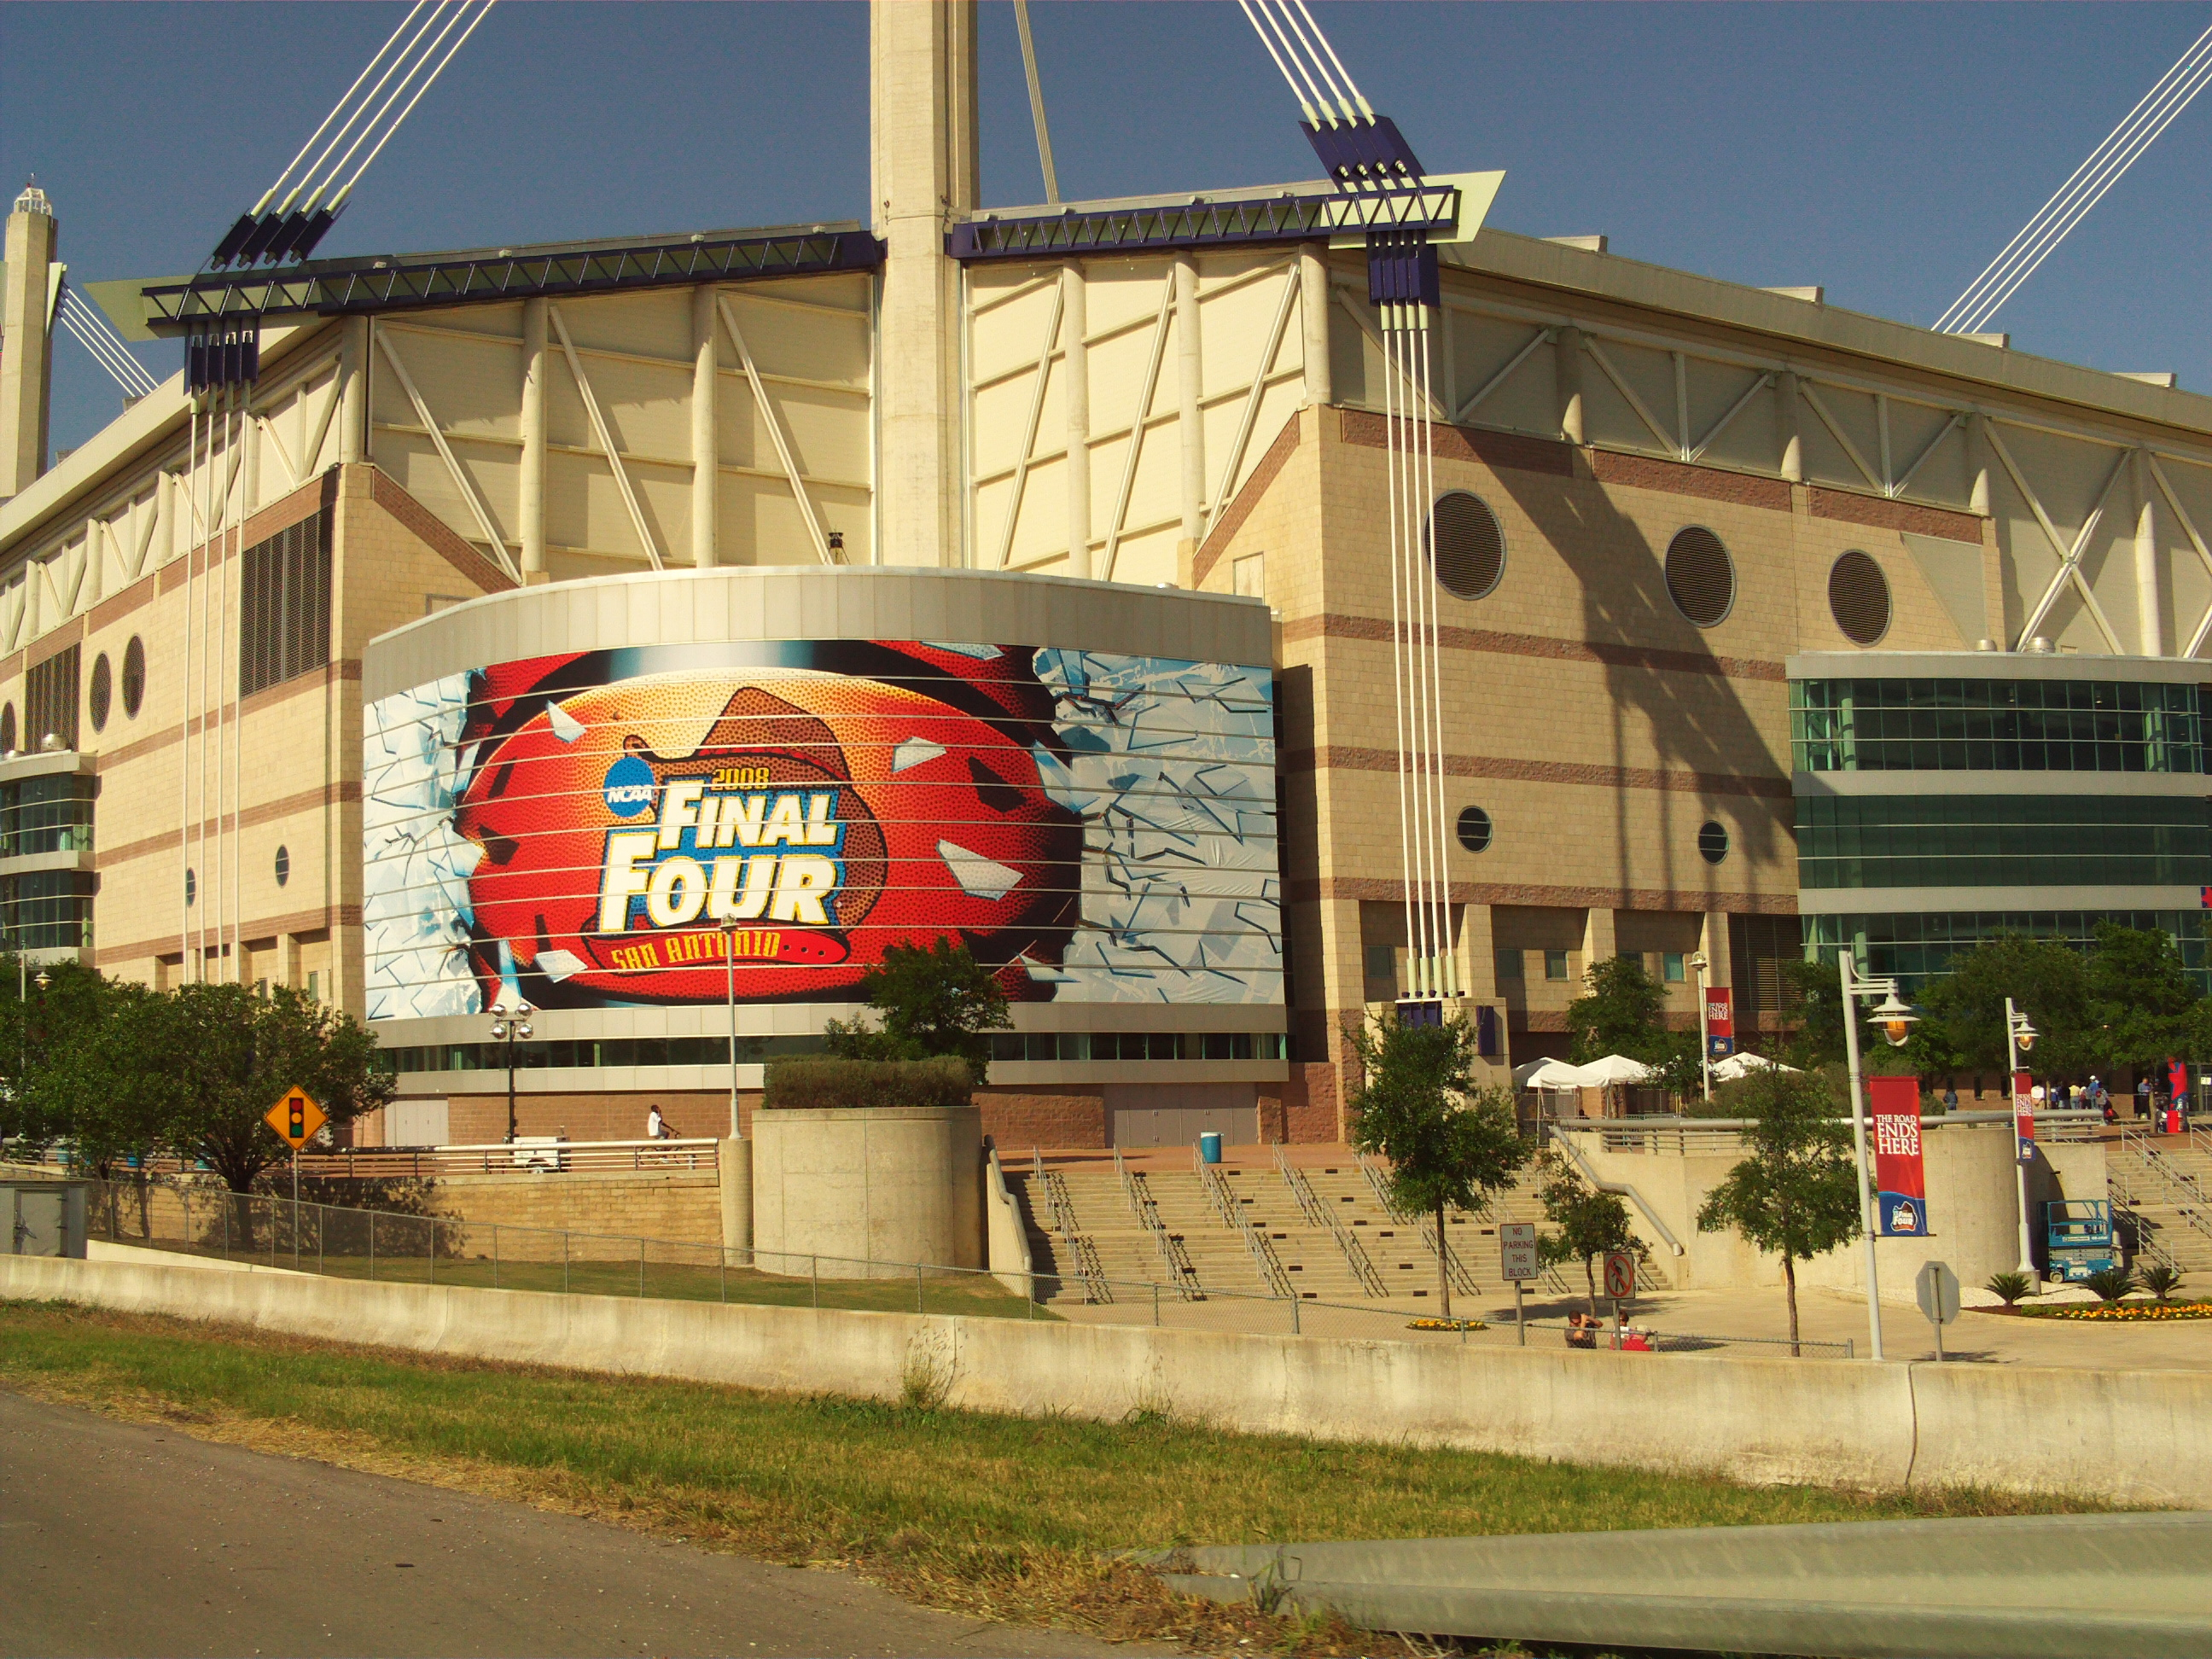 The Alamo Dome before the Final Four